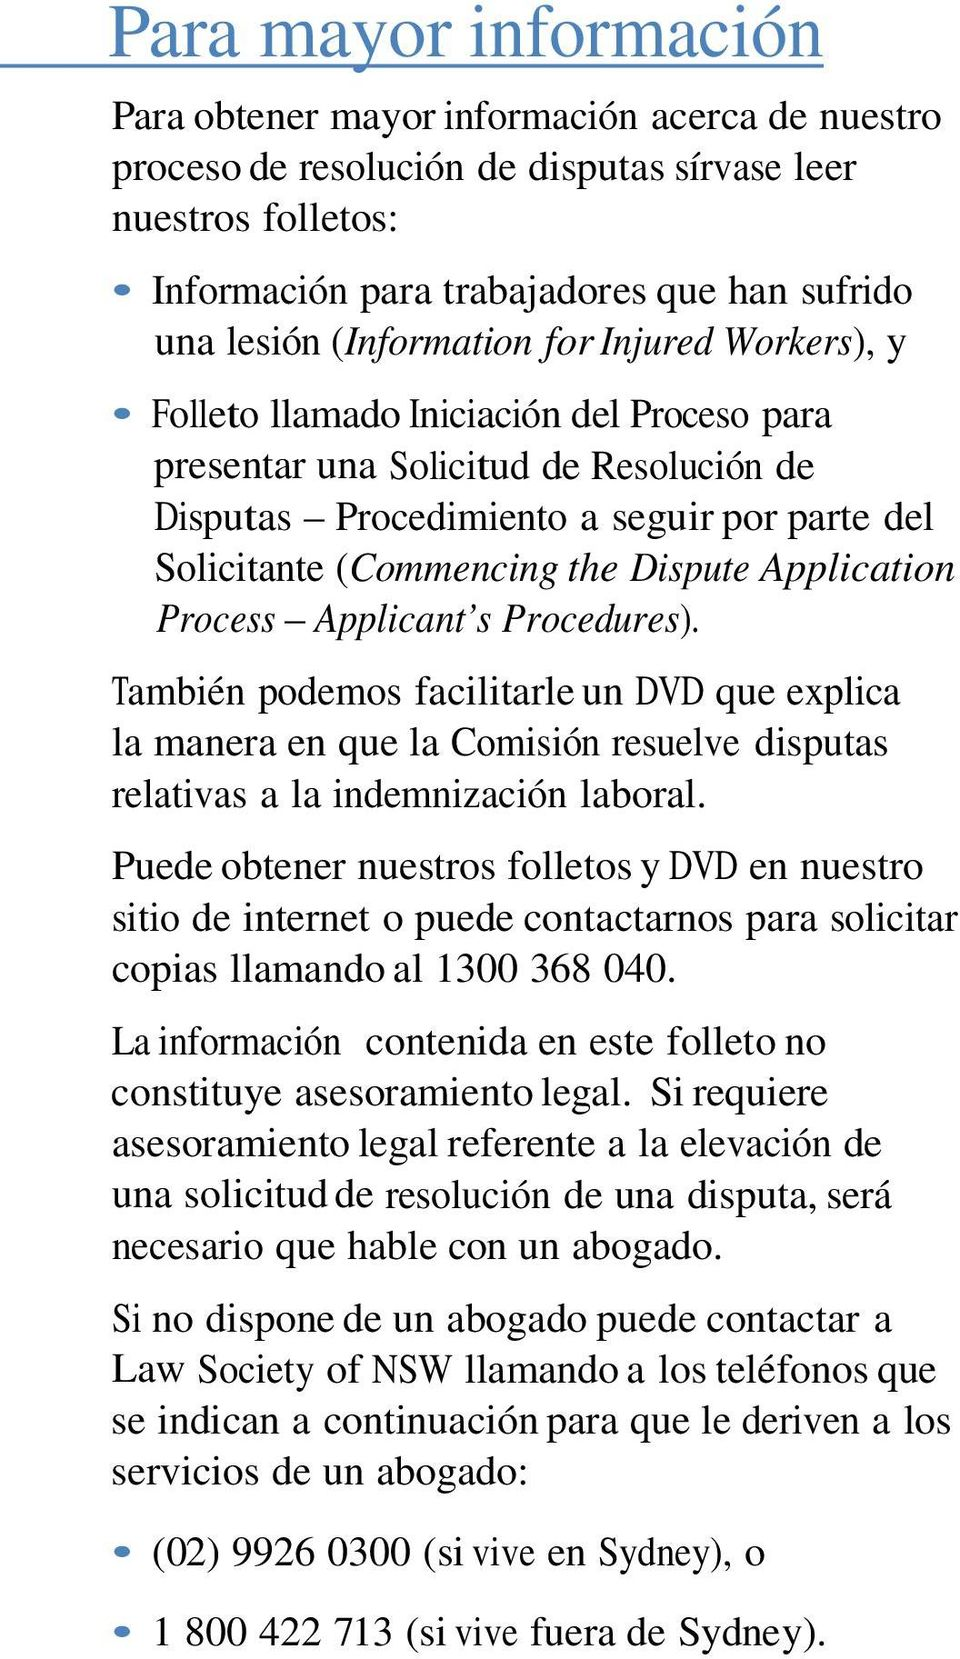 Dispute Application Process Applicant s Procedures). También podemos facilitarle un DVD que explica la manera en que la Comisión resuelve disputas relativas a la indemnización laboral.